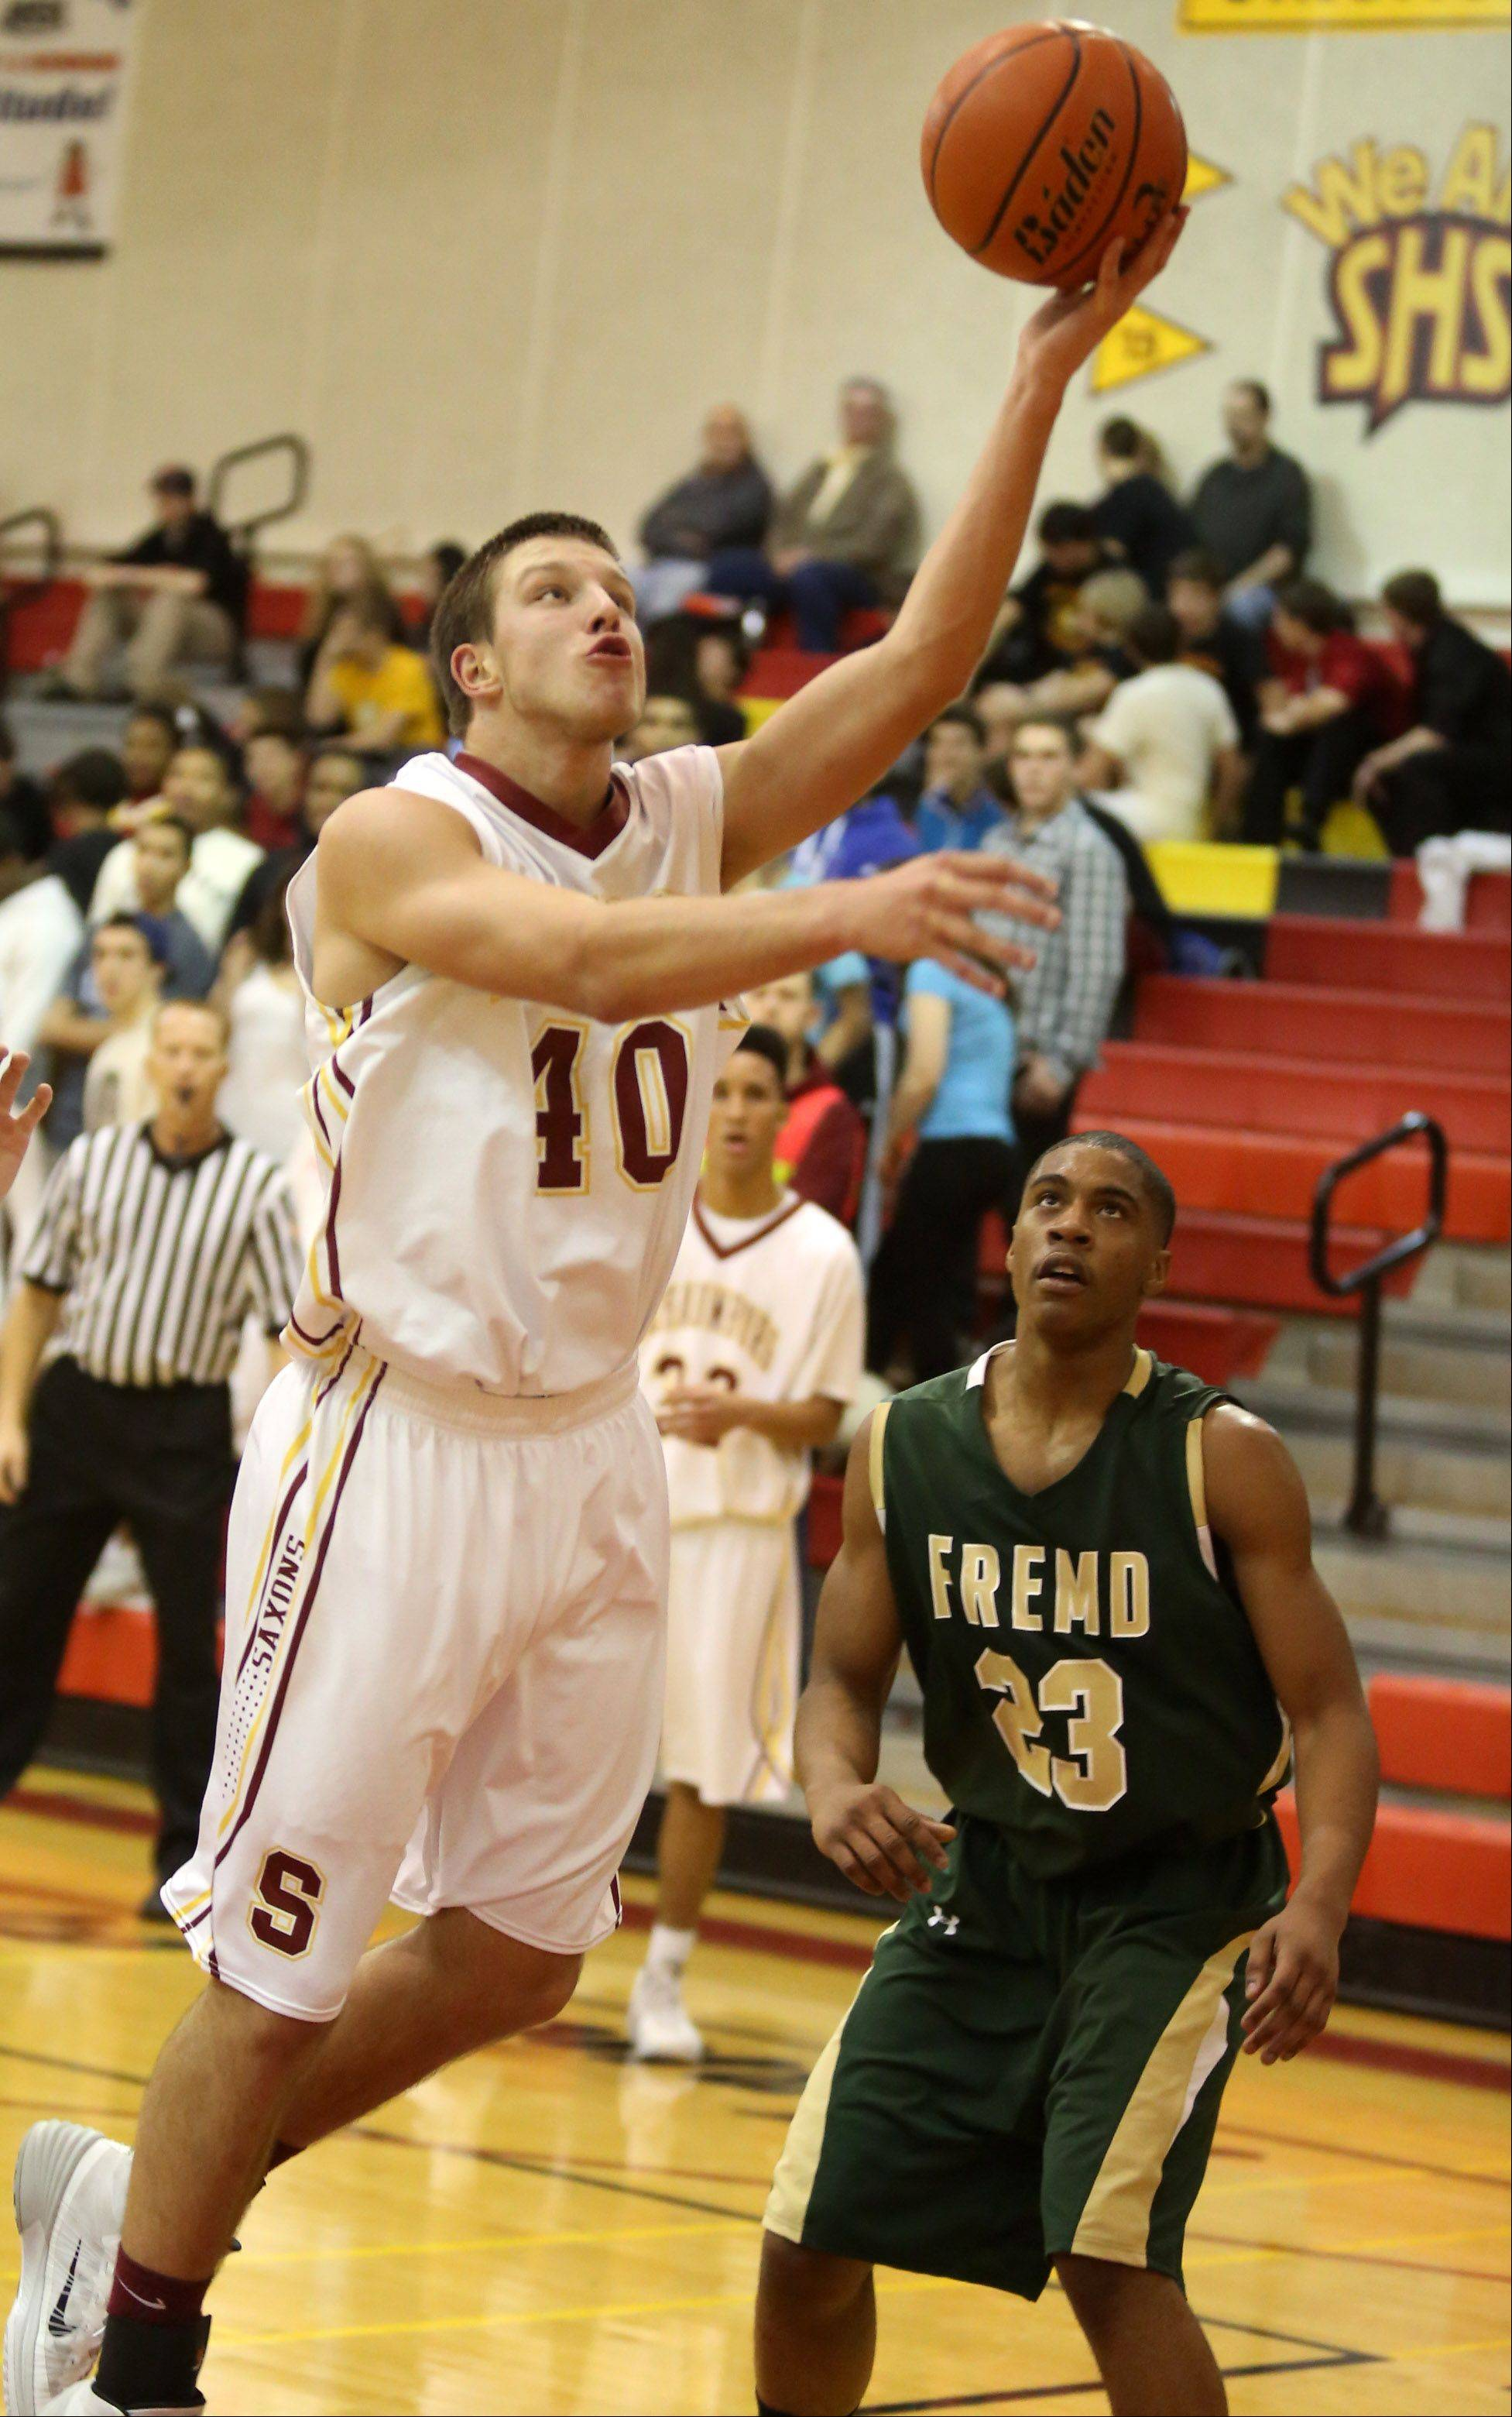 Schaumburg forward Joshua Rahn shoots over Fremd defender Xavier Williams.